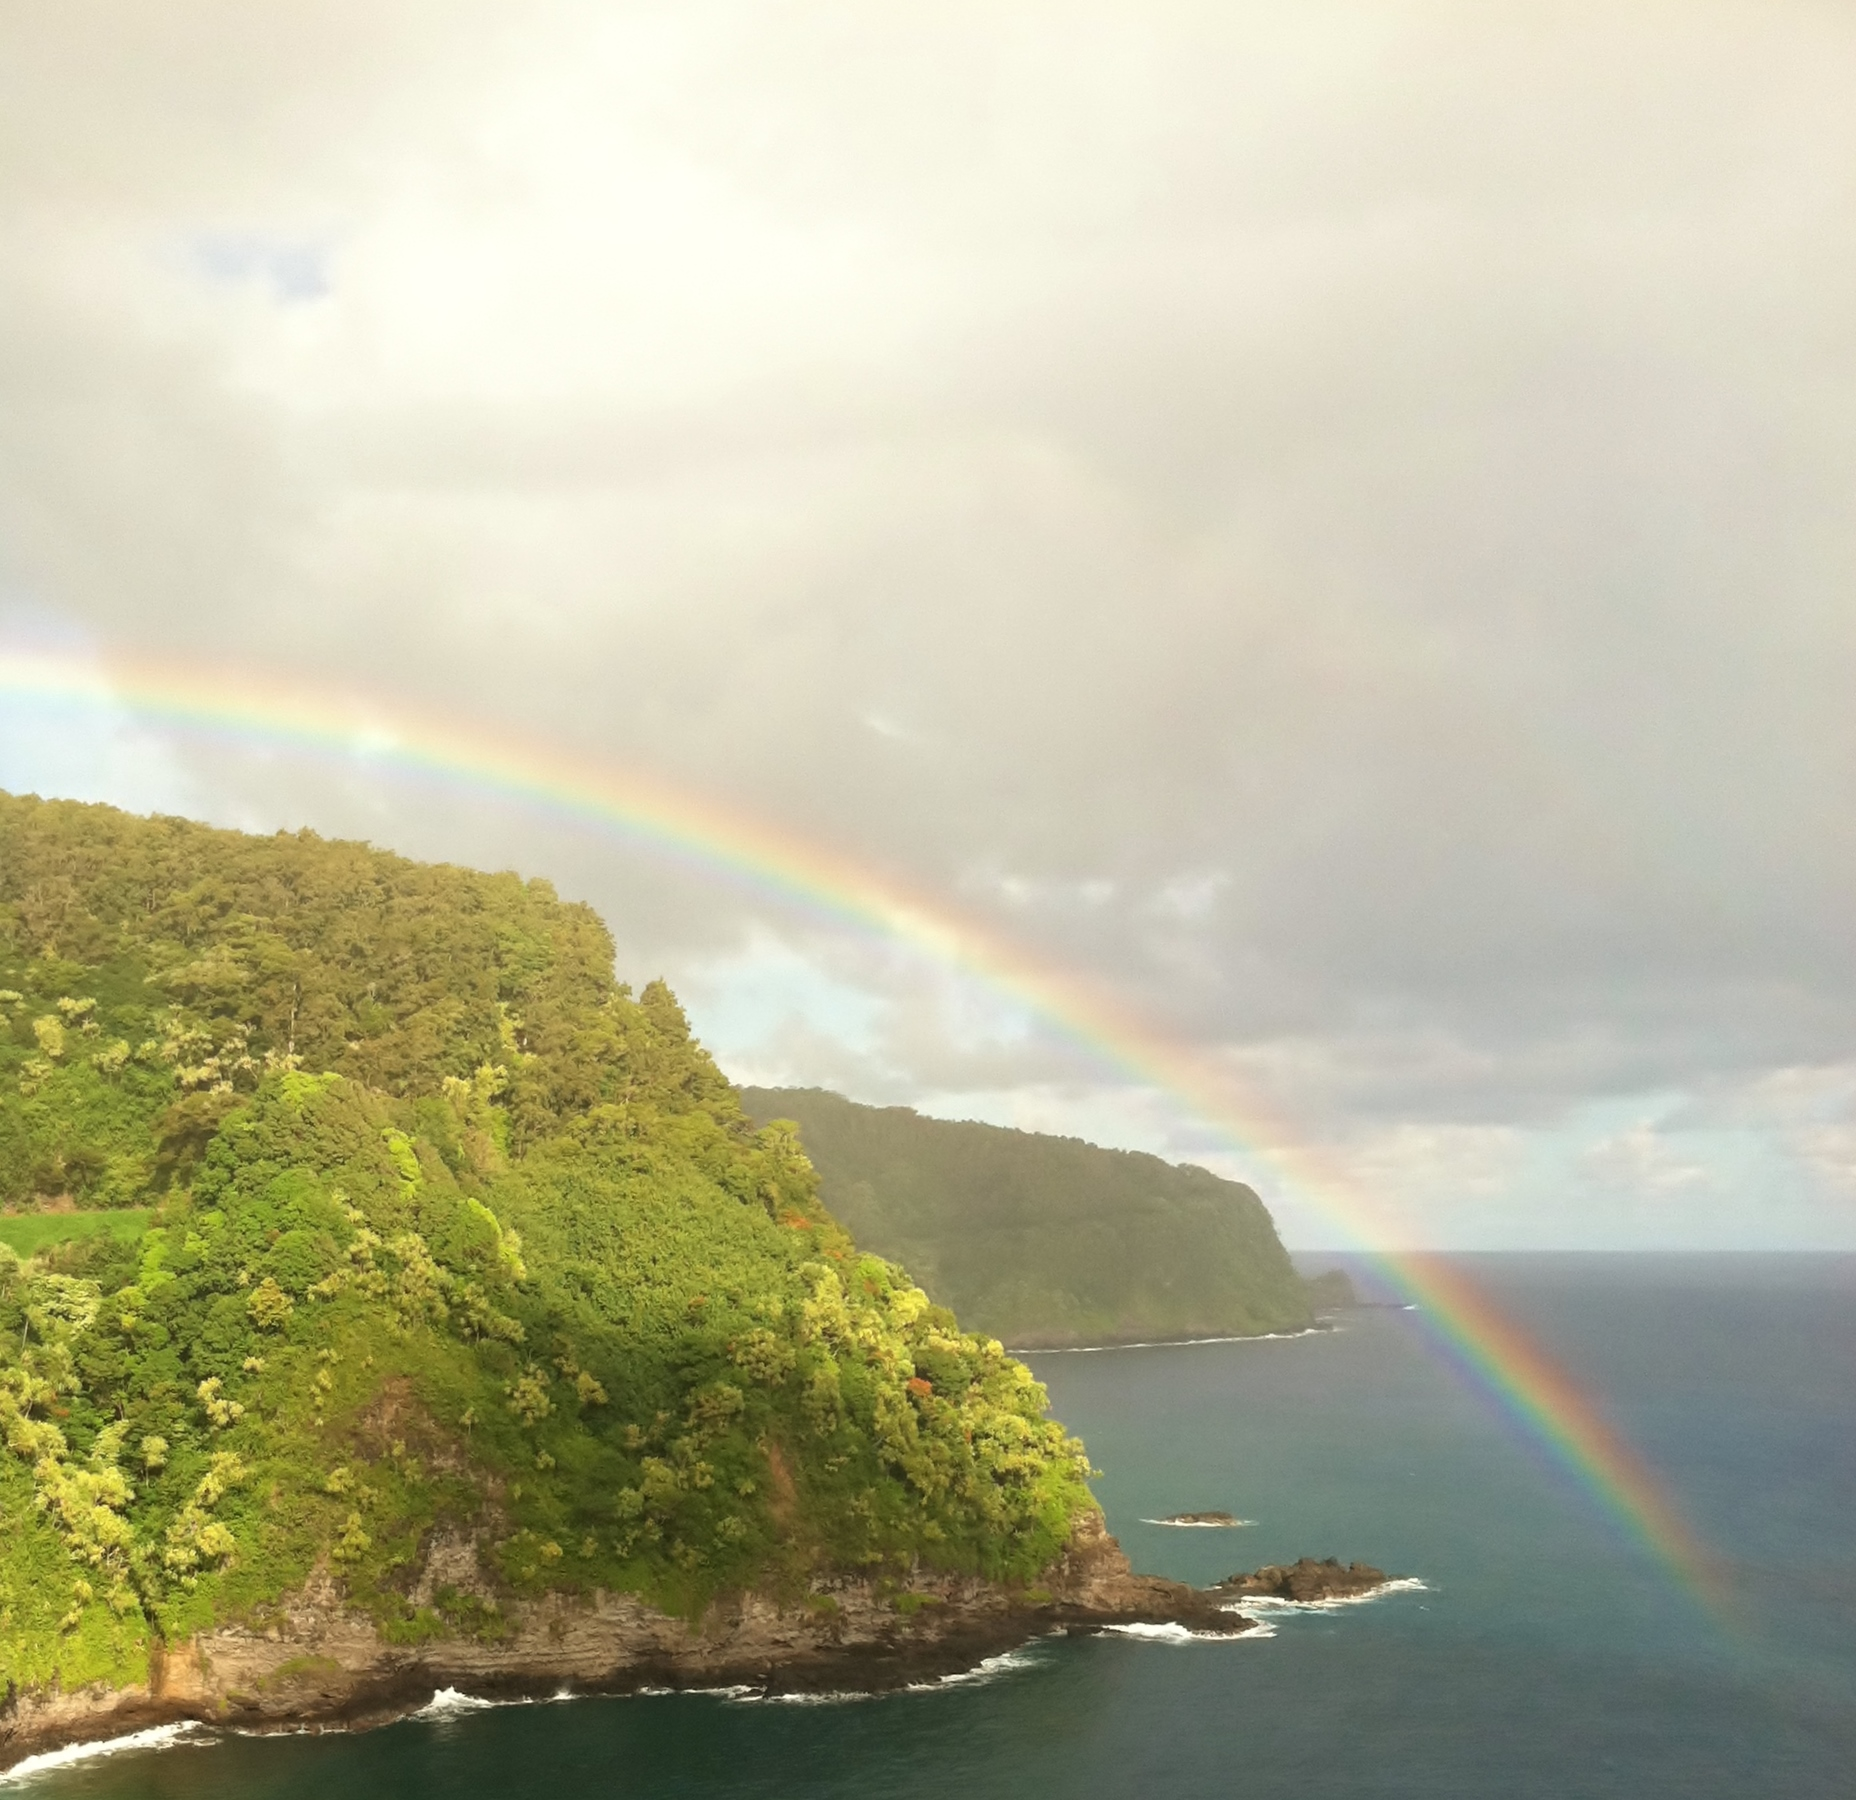 A rainbow extends over a cliff and into the calm, sapphire ocean